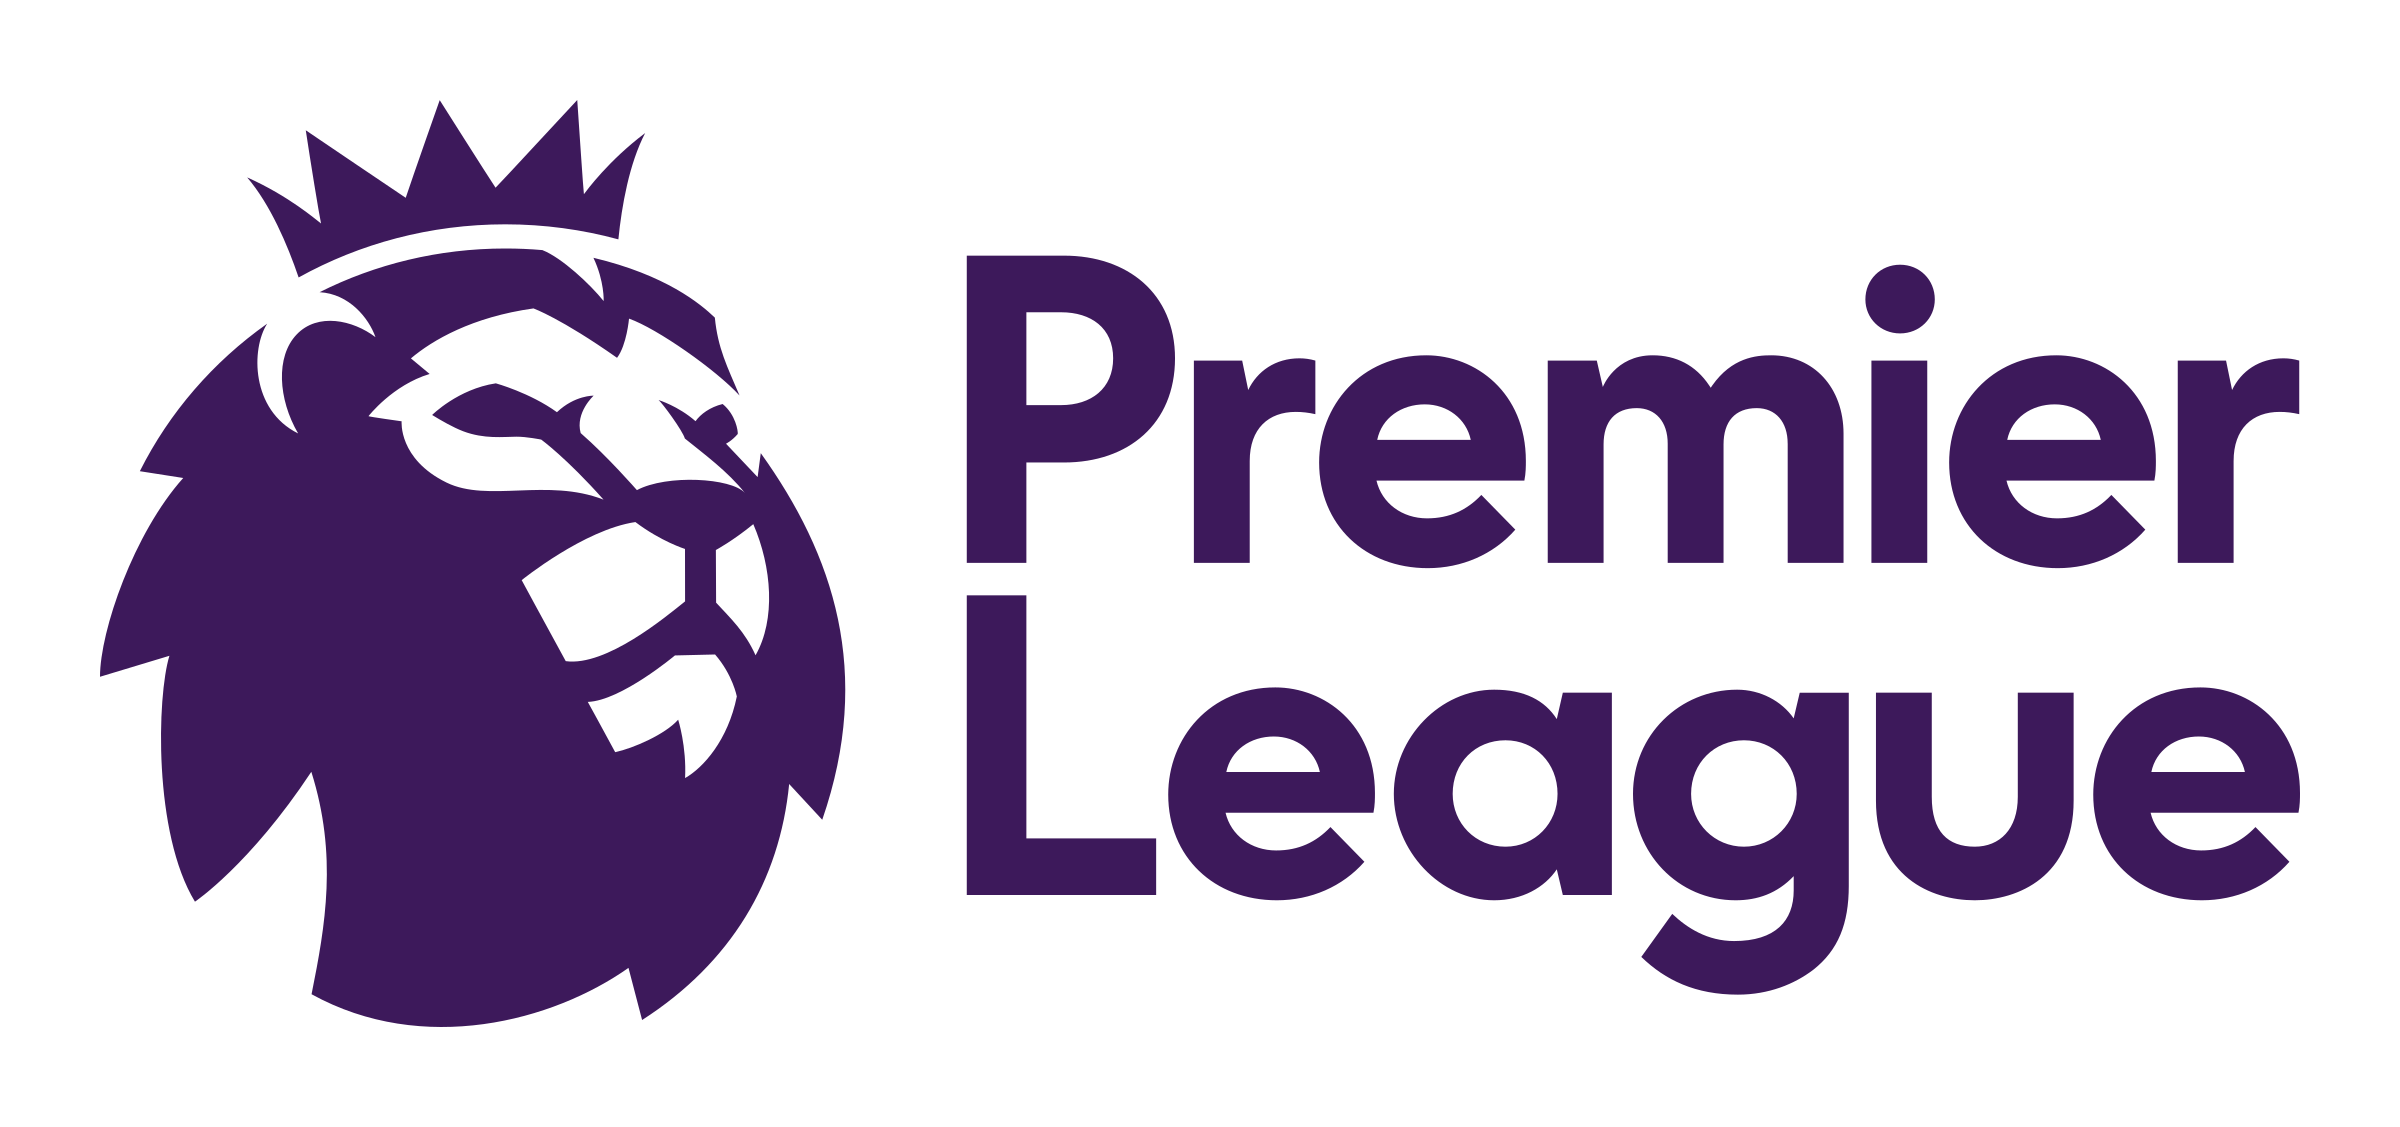 Latest updates from English Premier League 2019/20 season and betting involved and best slots